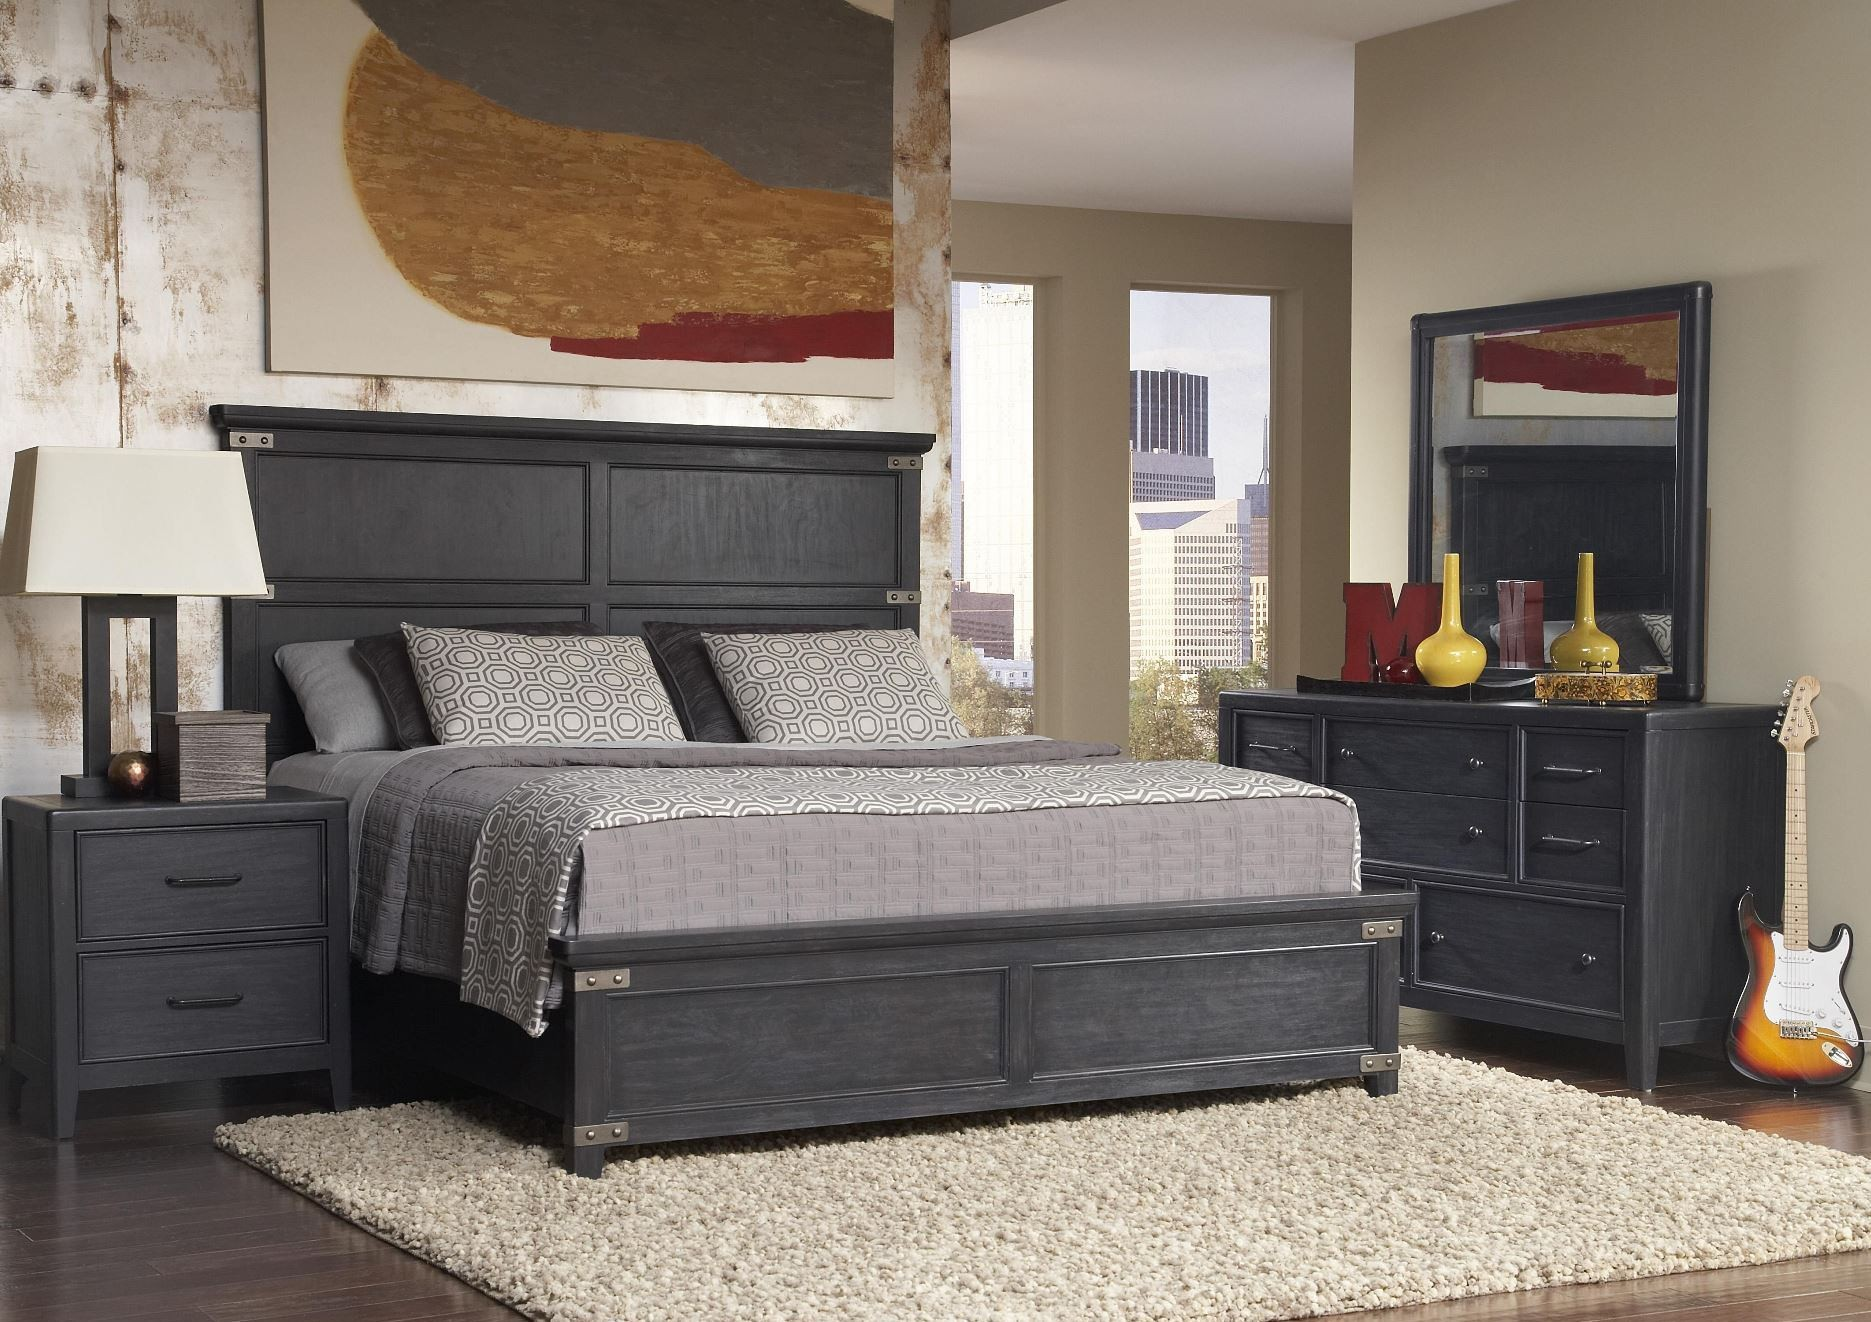 vintage tempo unique charcoal vintage tempo platform. Black Bedroom Furniture Sets. Home Design Ideas